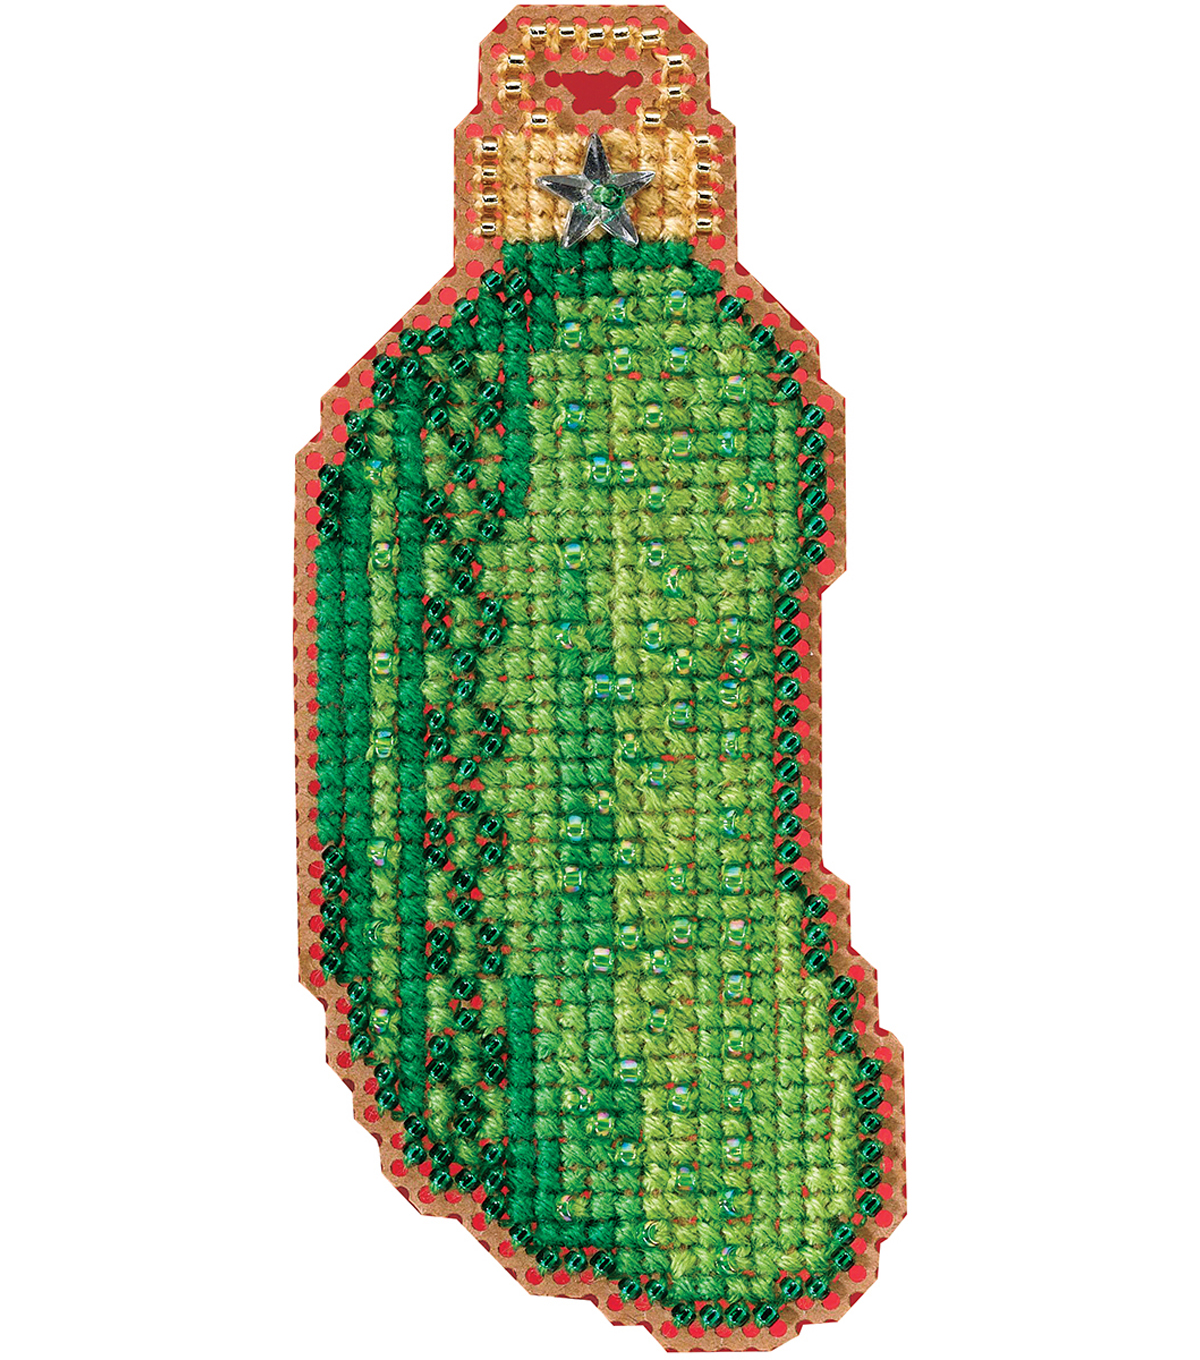 Mill Hill Counted Glass Bead Kit with Treasure-Christmas Pickle